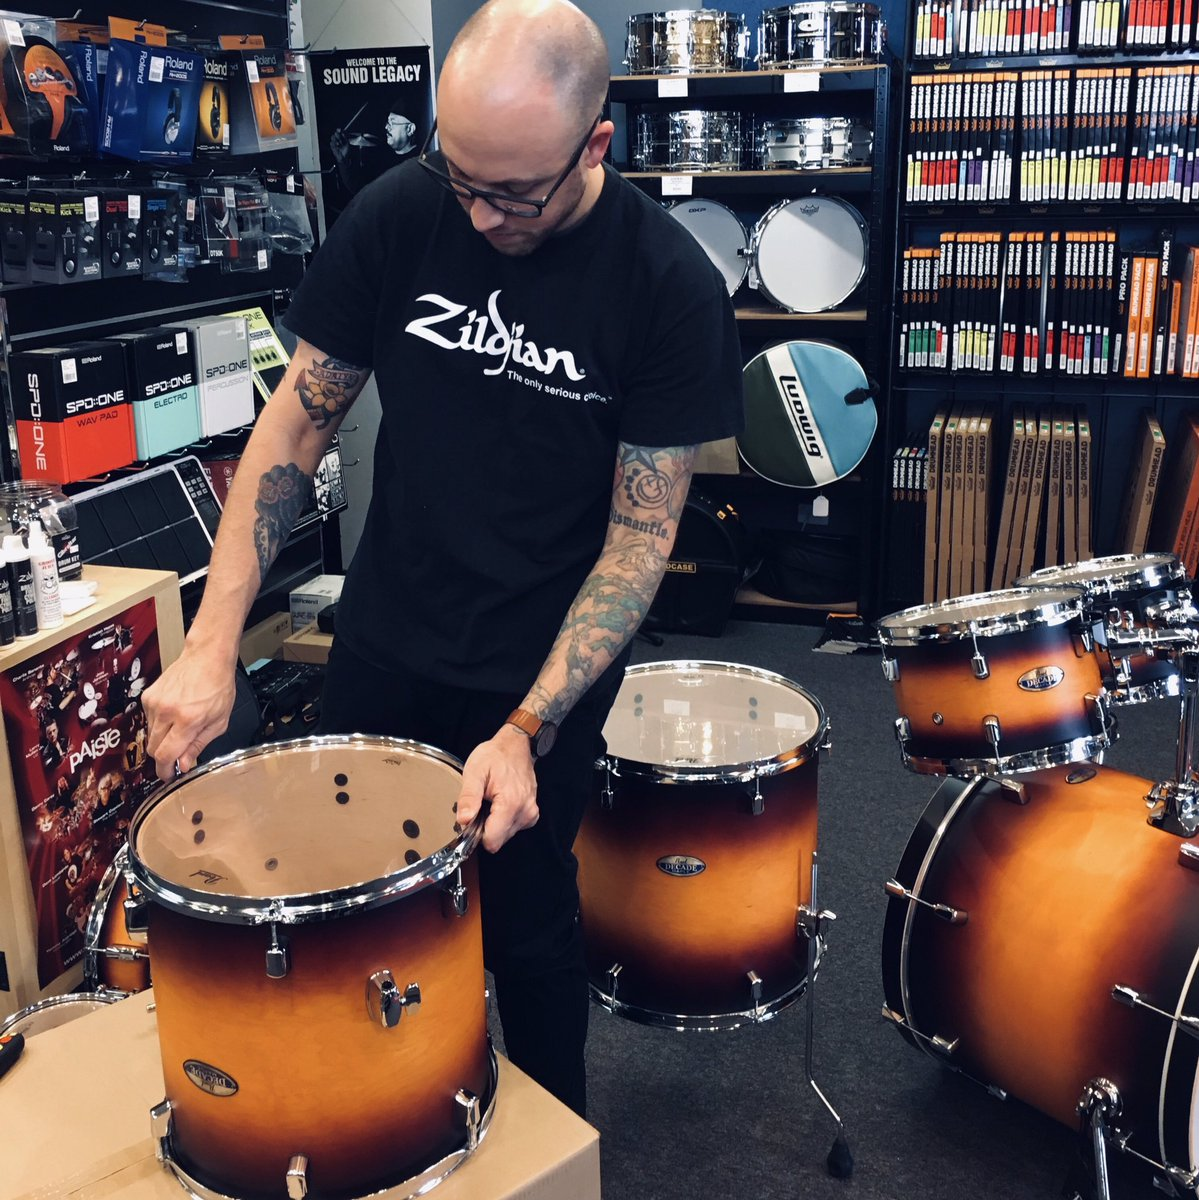 In progress........  Dan setting up the Pearl Decade Maple 7 piece Drum Kit right now!     Come on in and check it out for yourself.   Pearl Drums Australia Dynamic Music  #pearldrums #musicexpress #drummerslife #musicshop #musicstore #mtgravatt #dreamitliveit #mtgravattmusicshop<br>http://pic.twitter.com/OBW2ggXPav